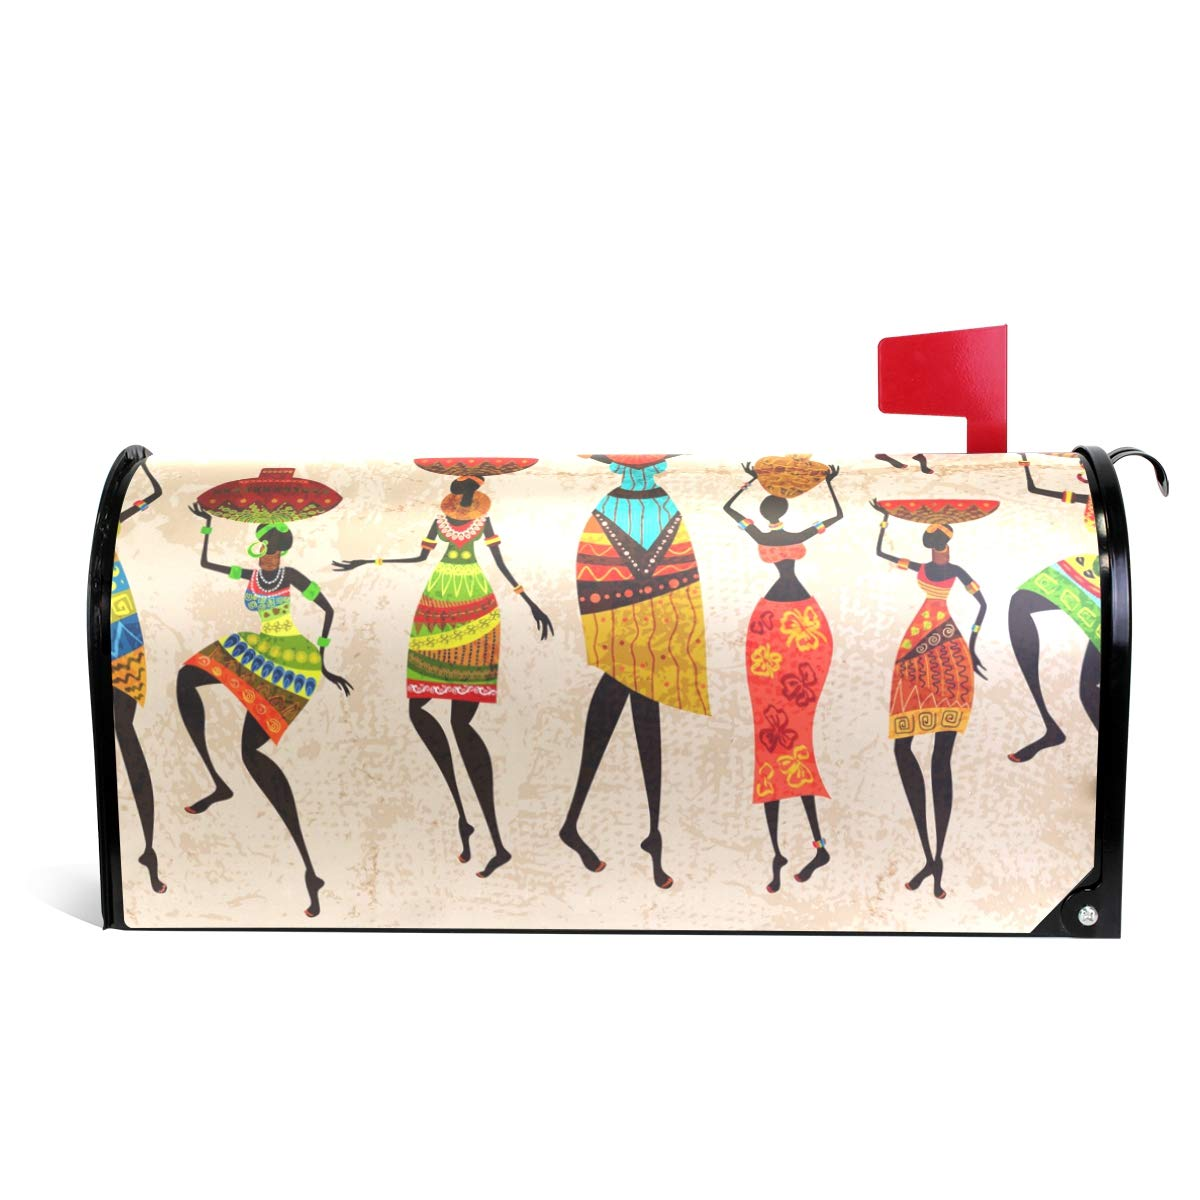 LORVIES Retro Beautiful African Women Magnetic Mailbox Cover Oversized 25.5 x 18 Inch by LORVIES